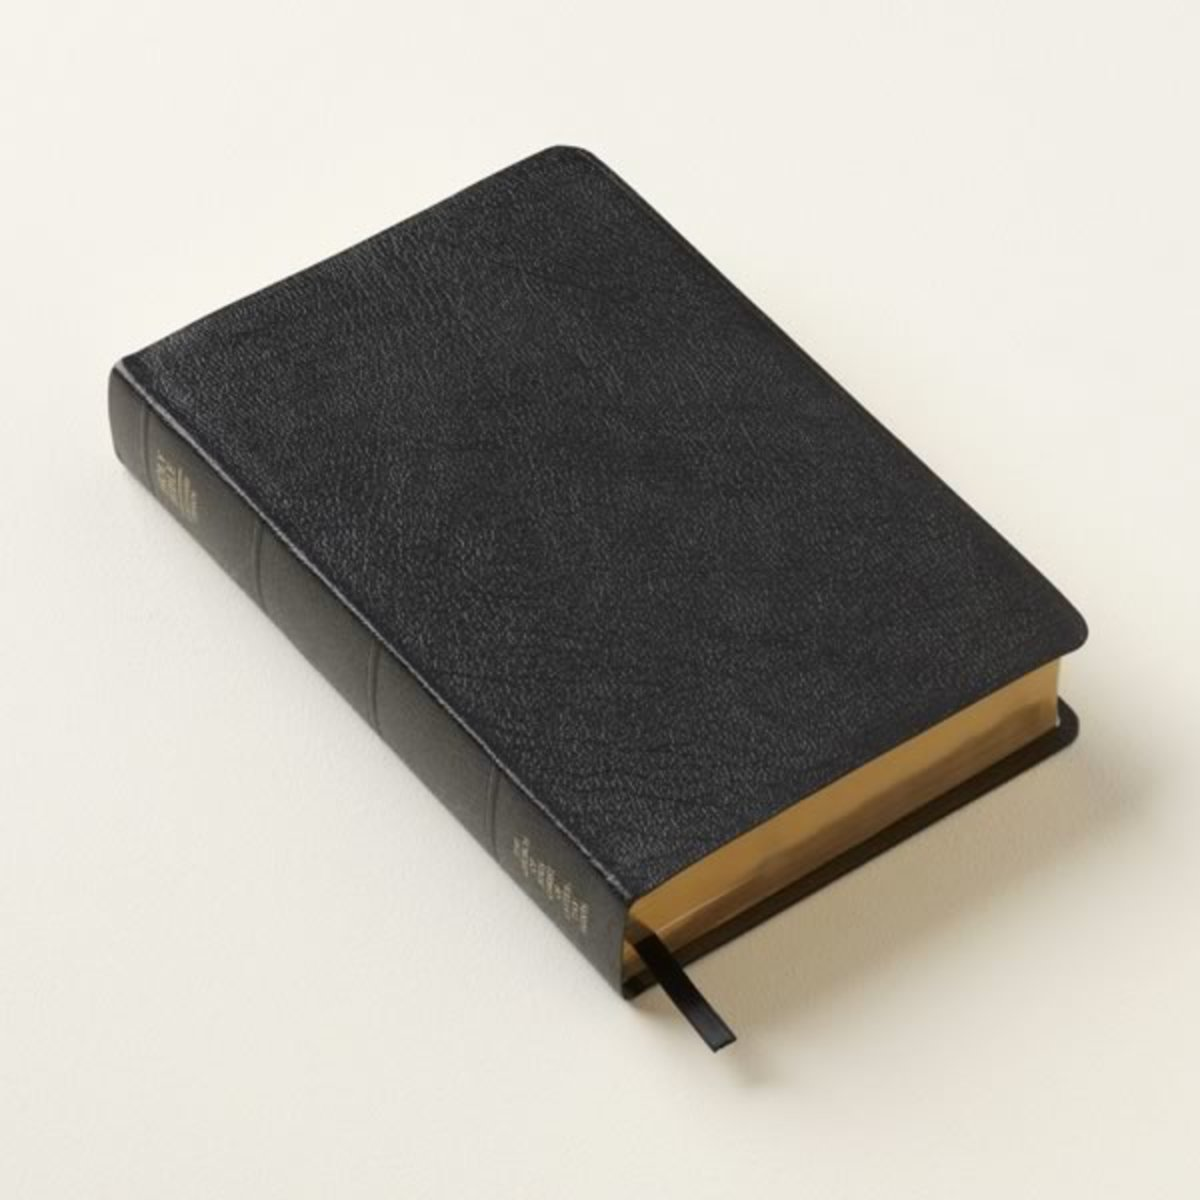 An example of bonded leather, often used for Bibles, inexpensive photo albums, and journals.